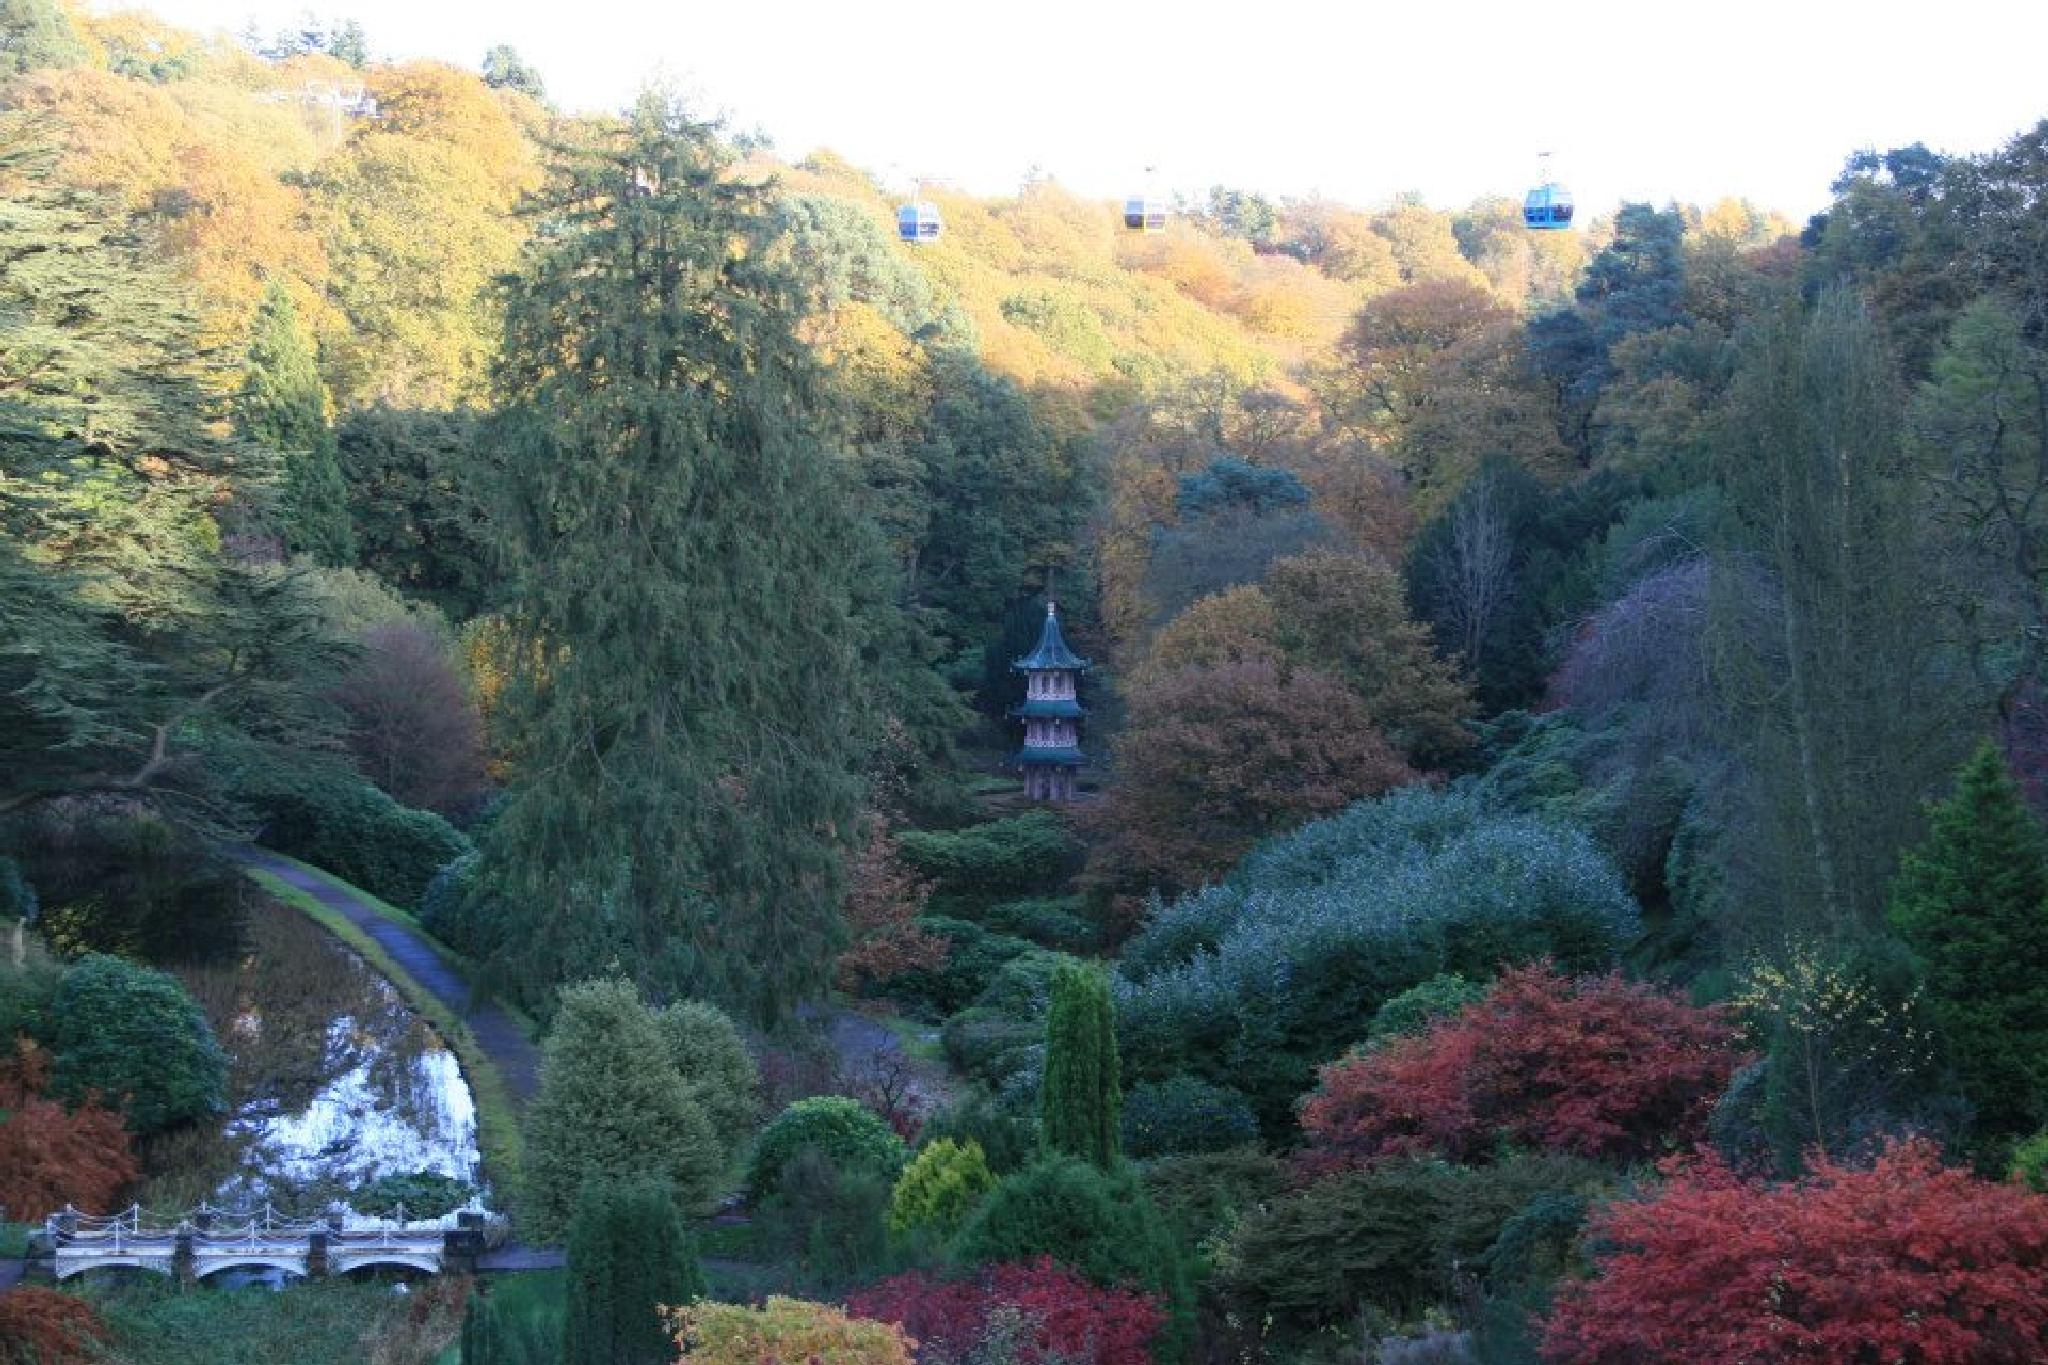 Pagoda in the Gardens by Suzanne Hyde